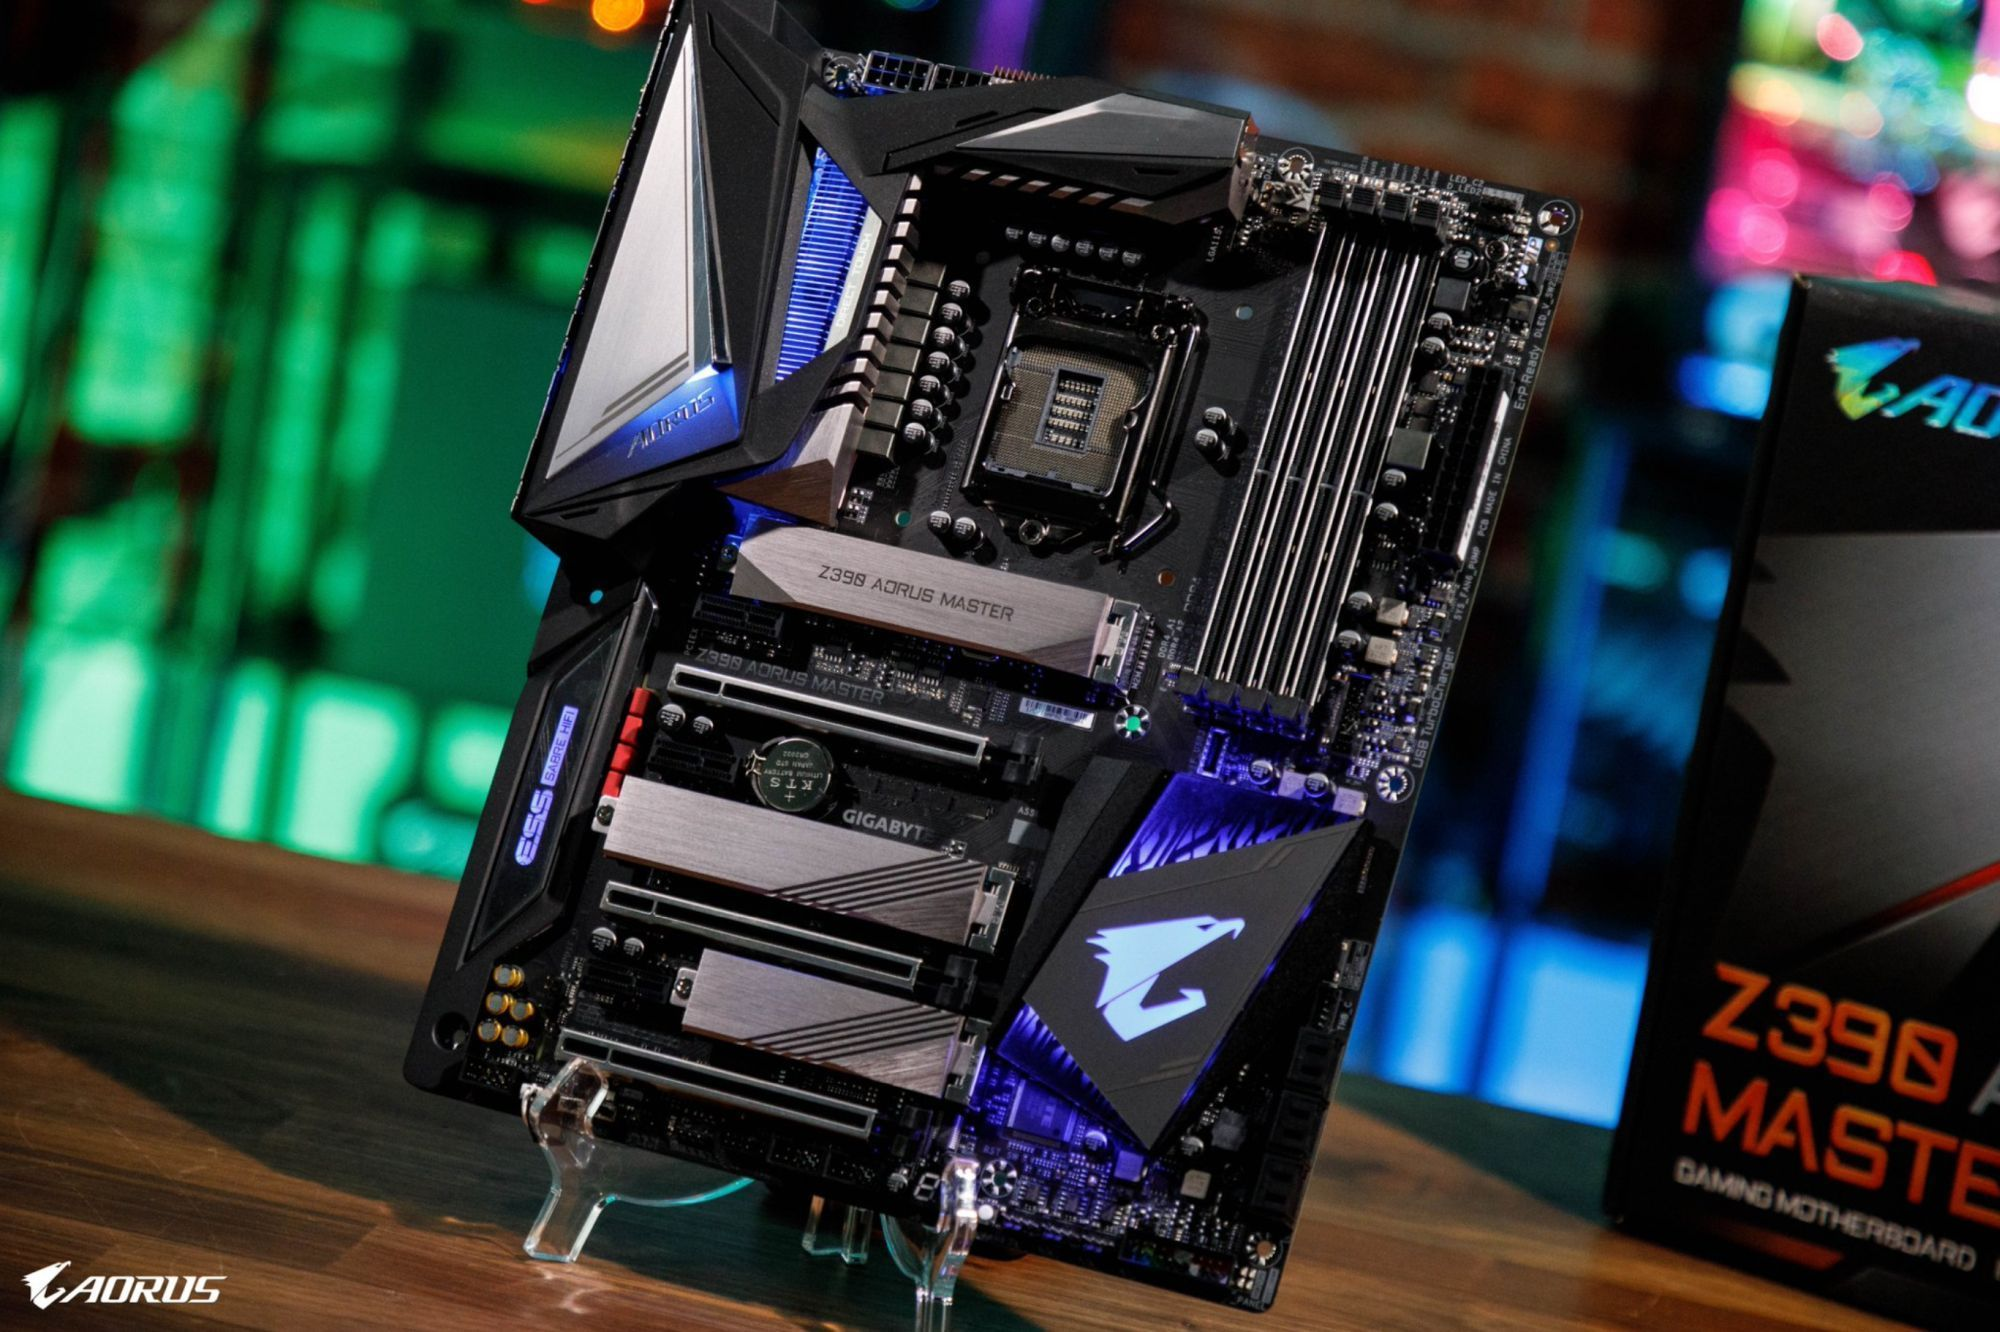 Intel Z390 Motherboards Revealed Whats Inside Intels New High End Best Gaming Motherboard Diagram Chipset Pcworld